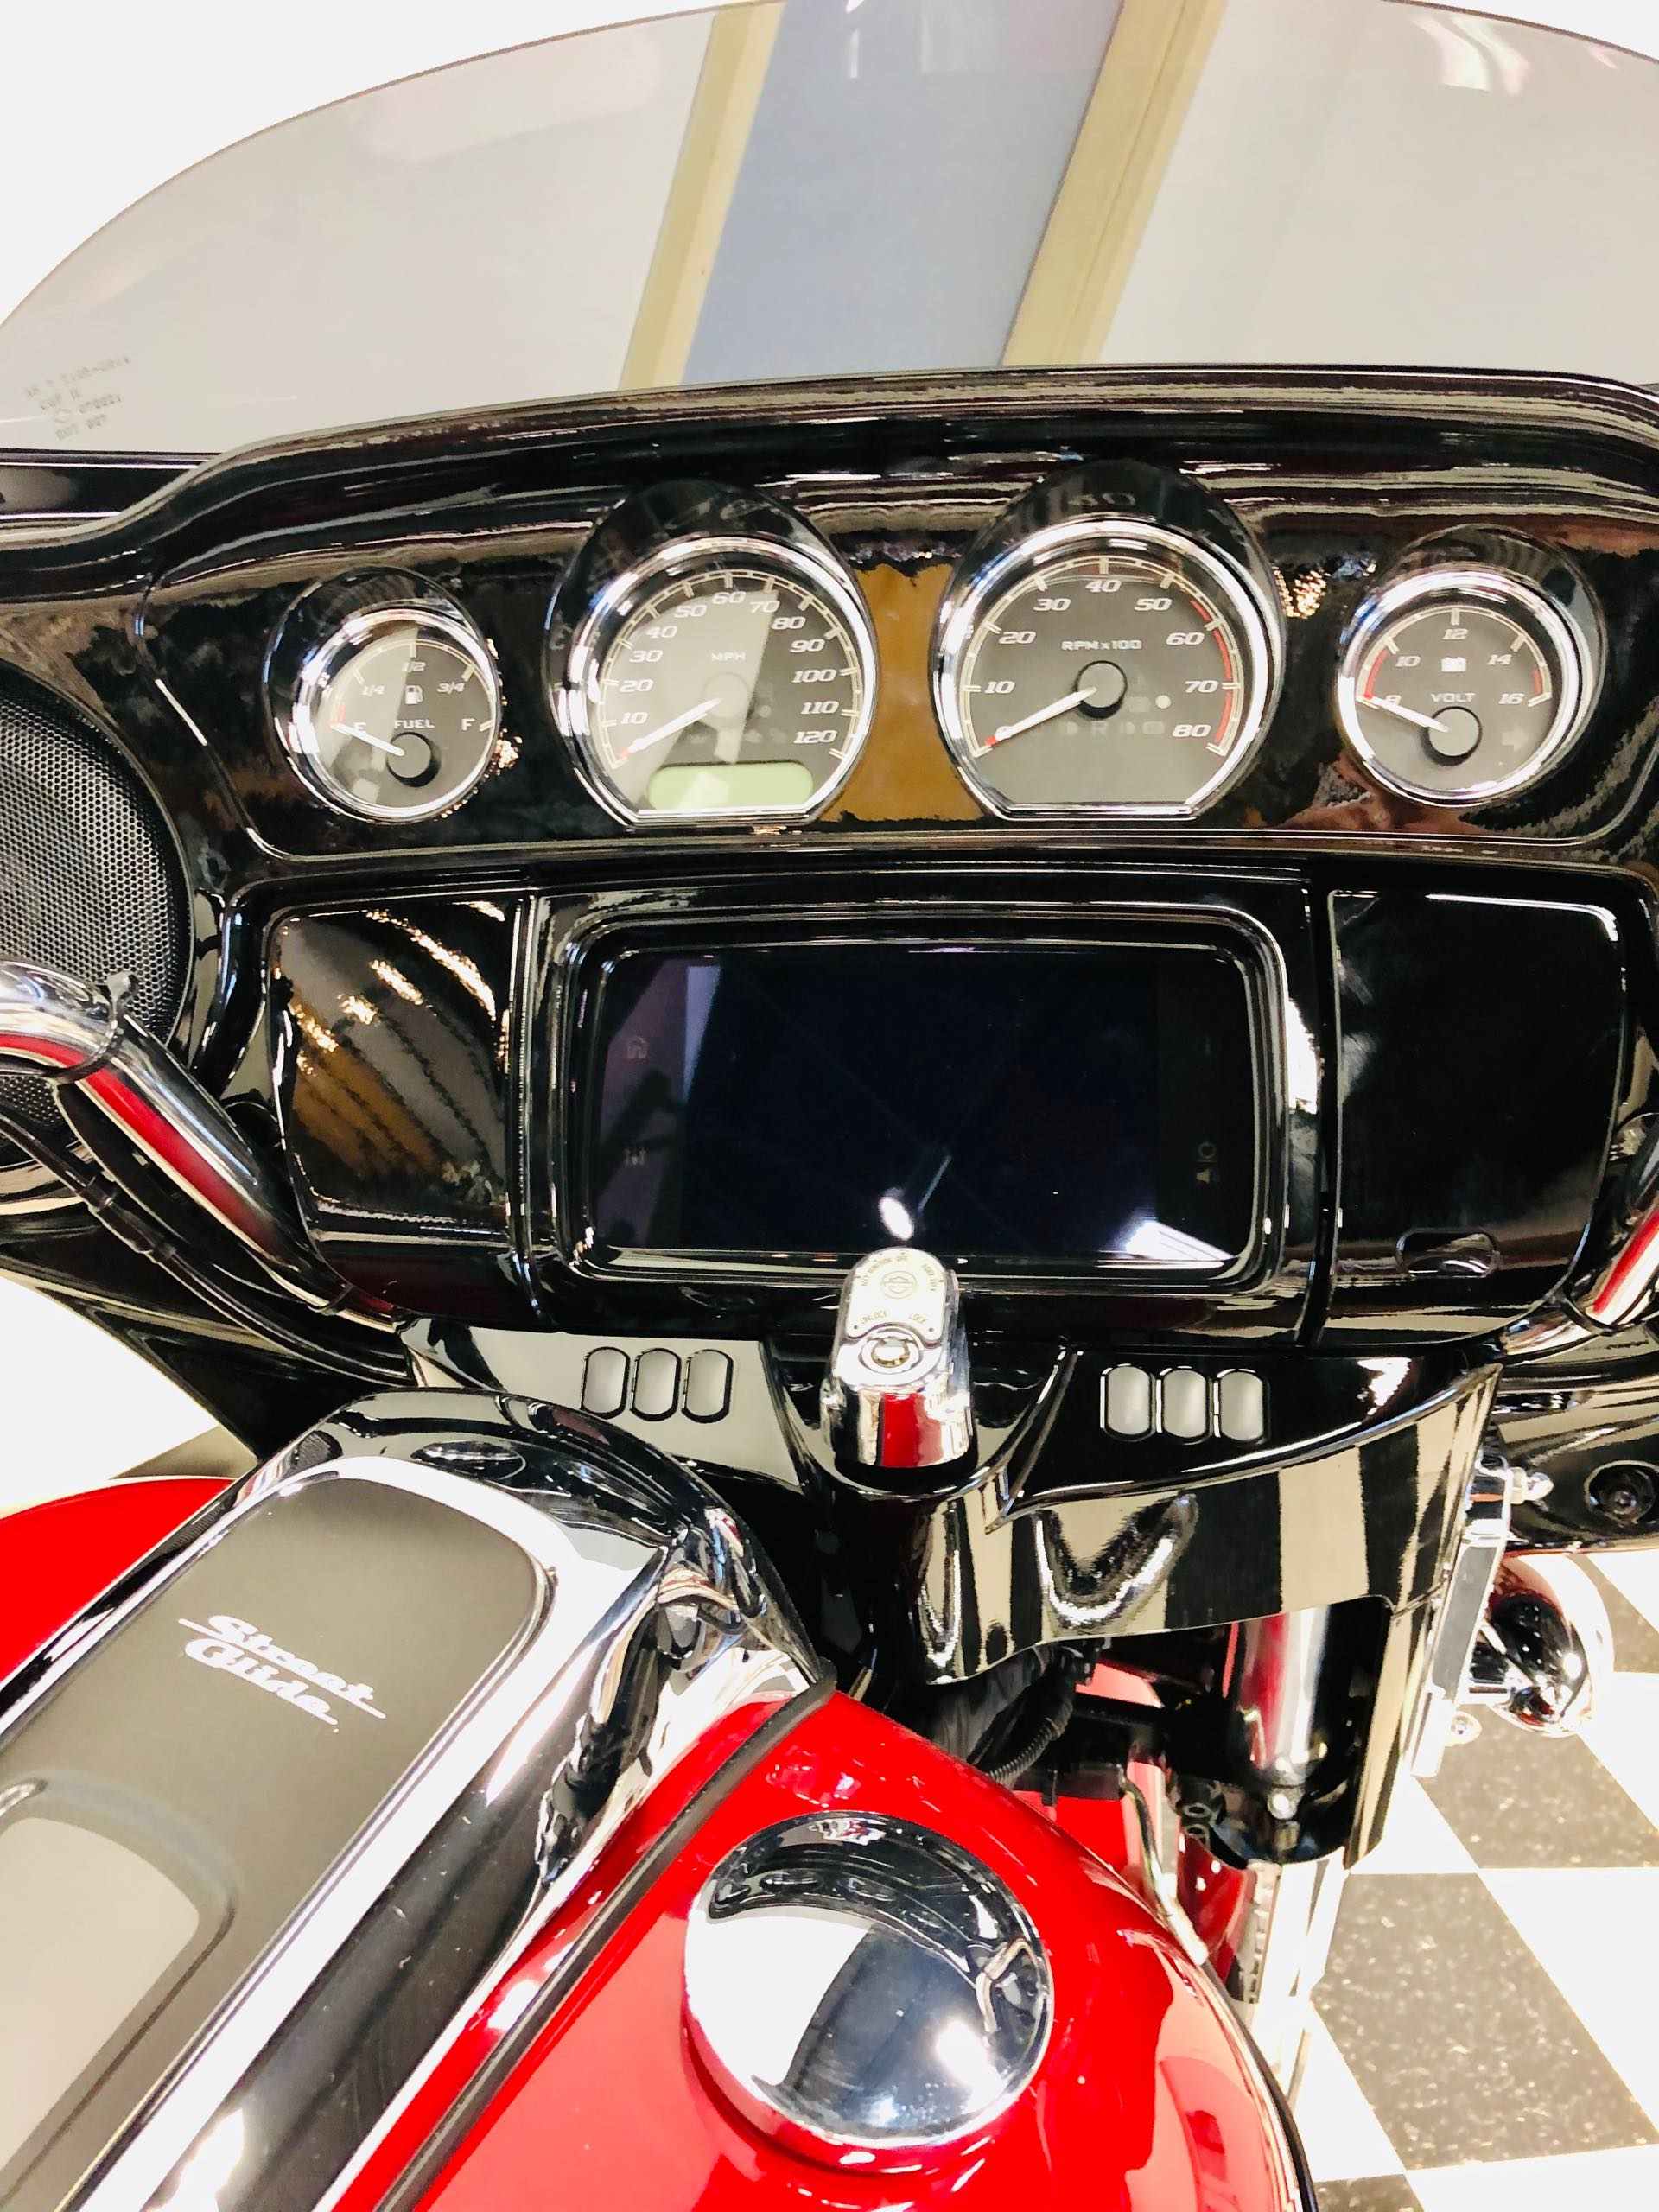 2021 Harley-Davidson Grand American Touring Street Glide Special at Deluxe Harley Davidson